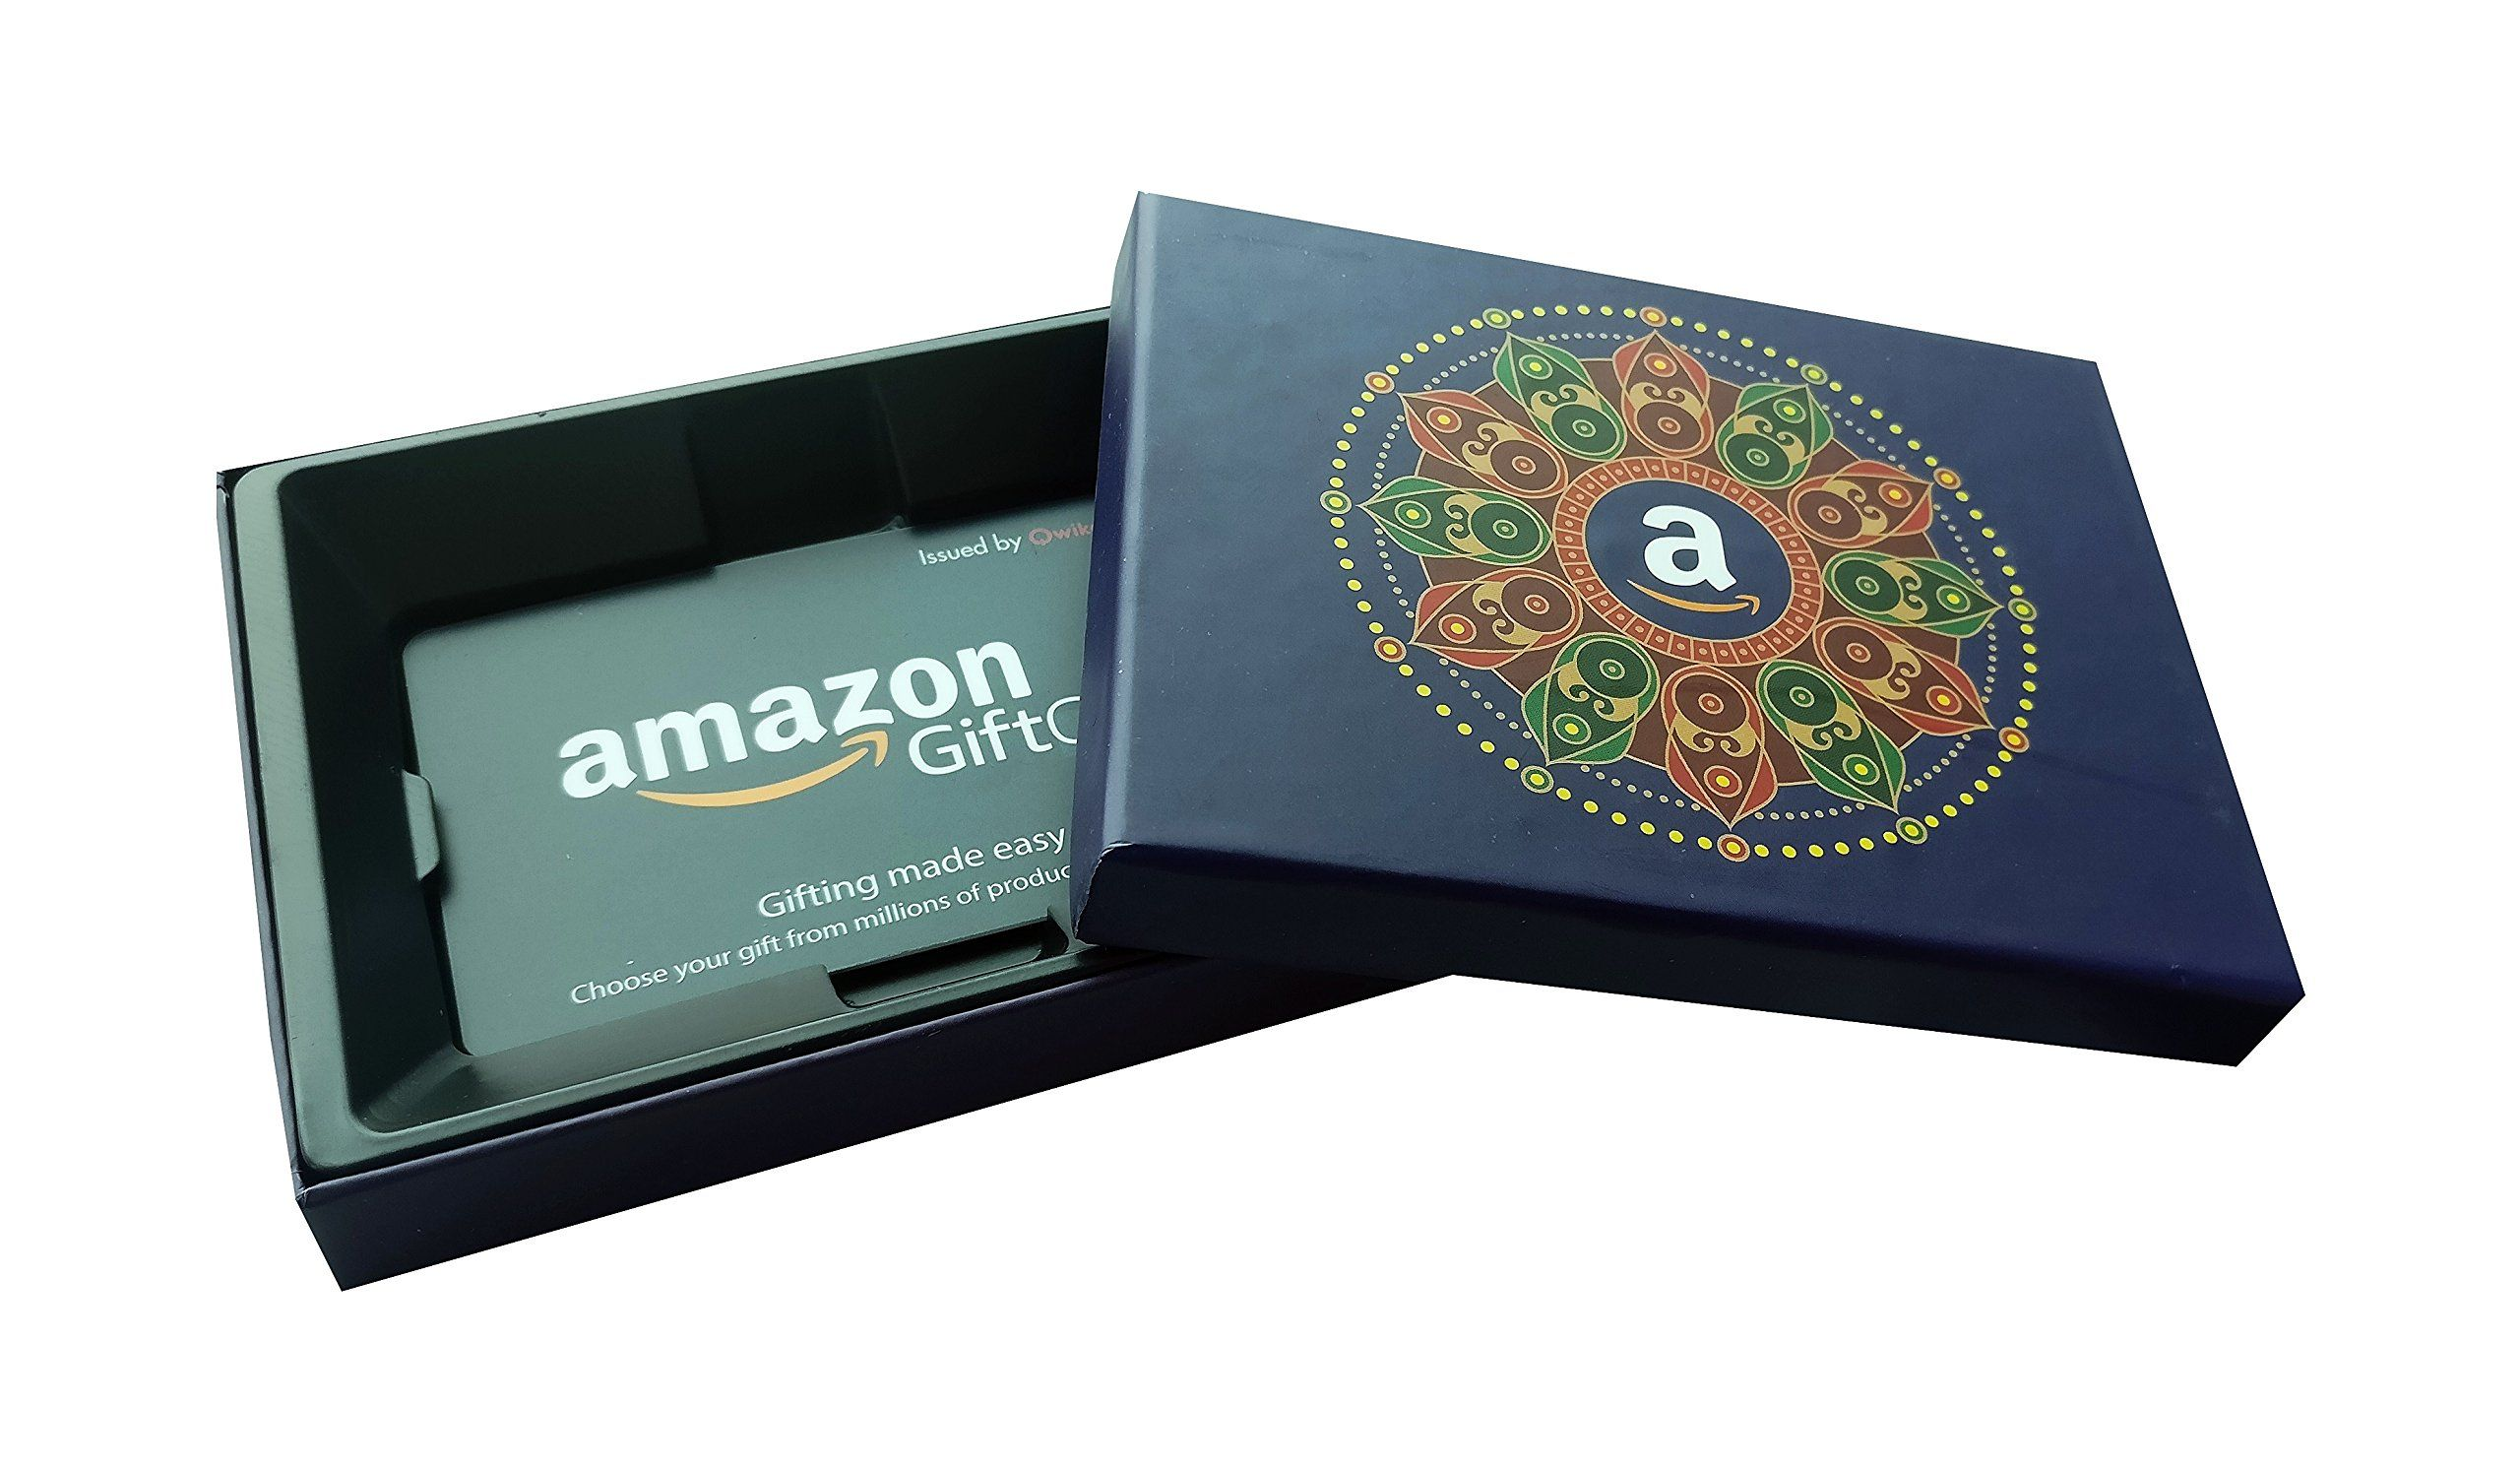 Thank You Cards Vouchers Buy Thank You Vouchers Cards Online In India Amazon In Blue Gift Gift Card Gift Card Specials